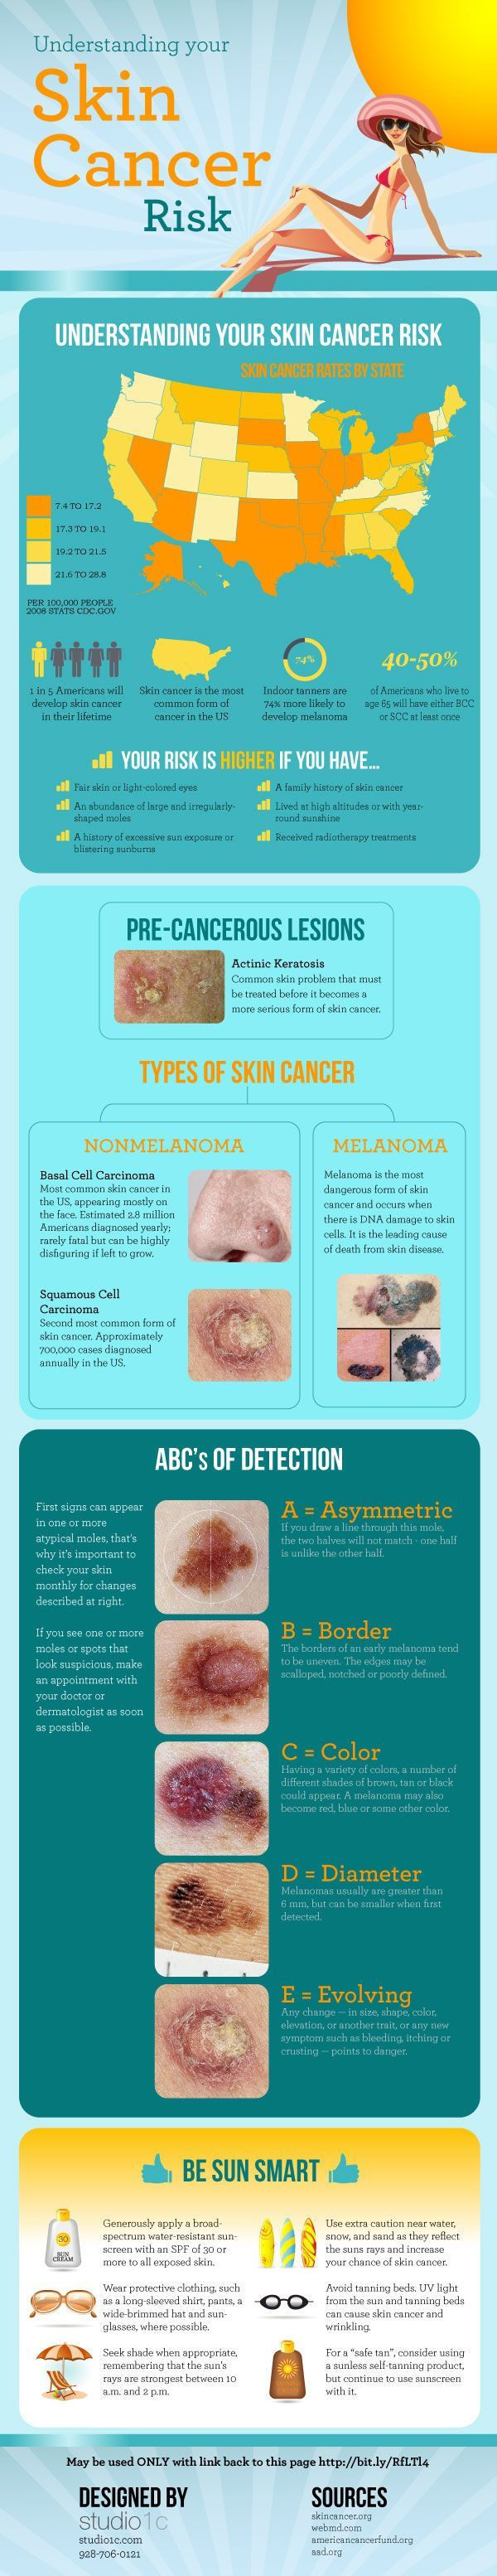 This picture tells us about the different types of skin cancer and what to look out for them, like colour, shape etc. It's also very easy to get skin cancer in the USA so make sure to always be aware of how long you're in the sun for and wear very protective clothing and high SPF sunscreen.